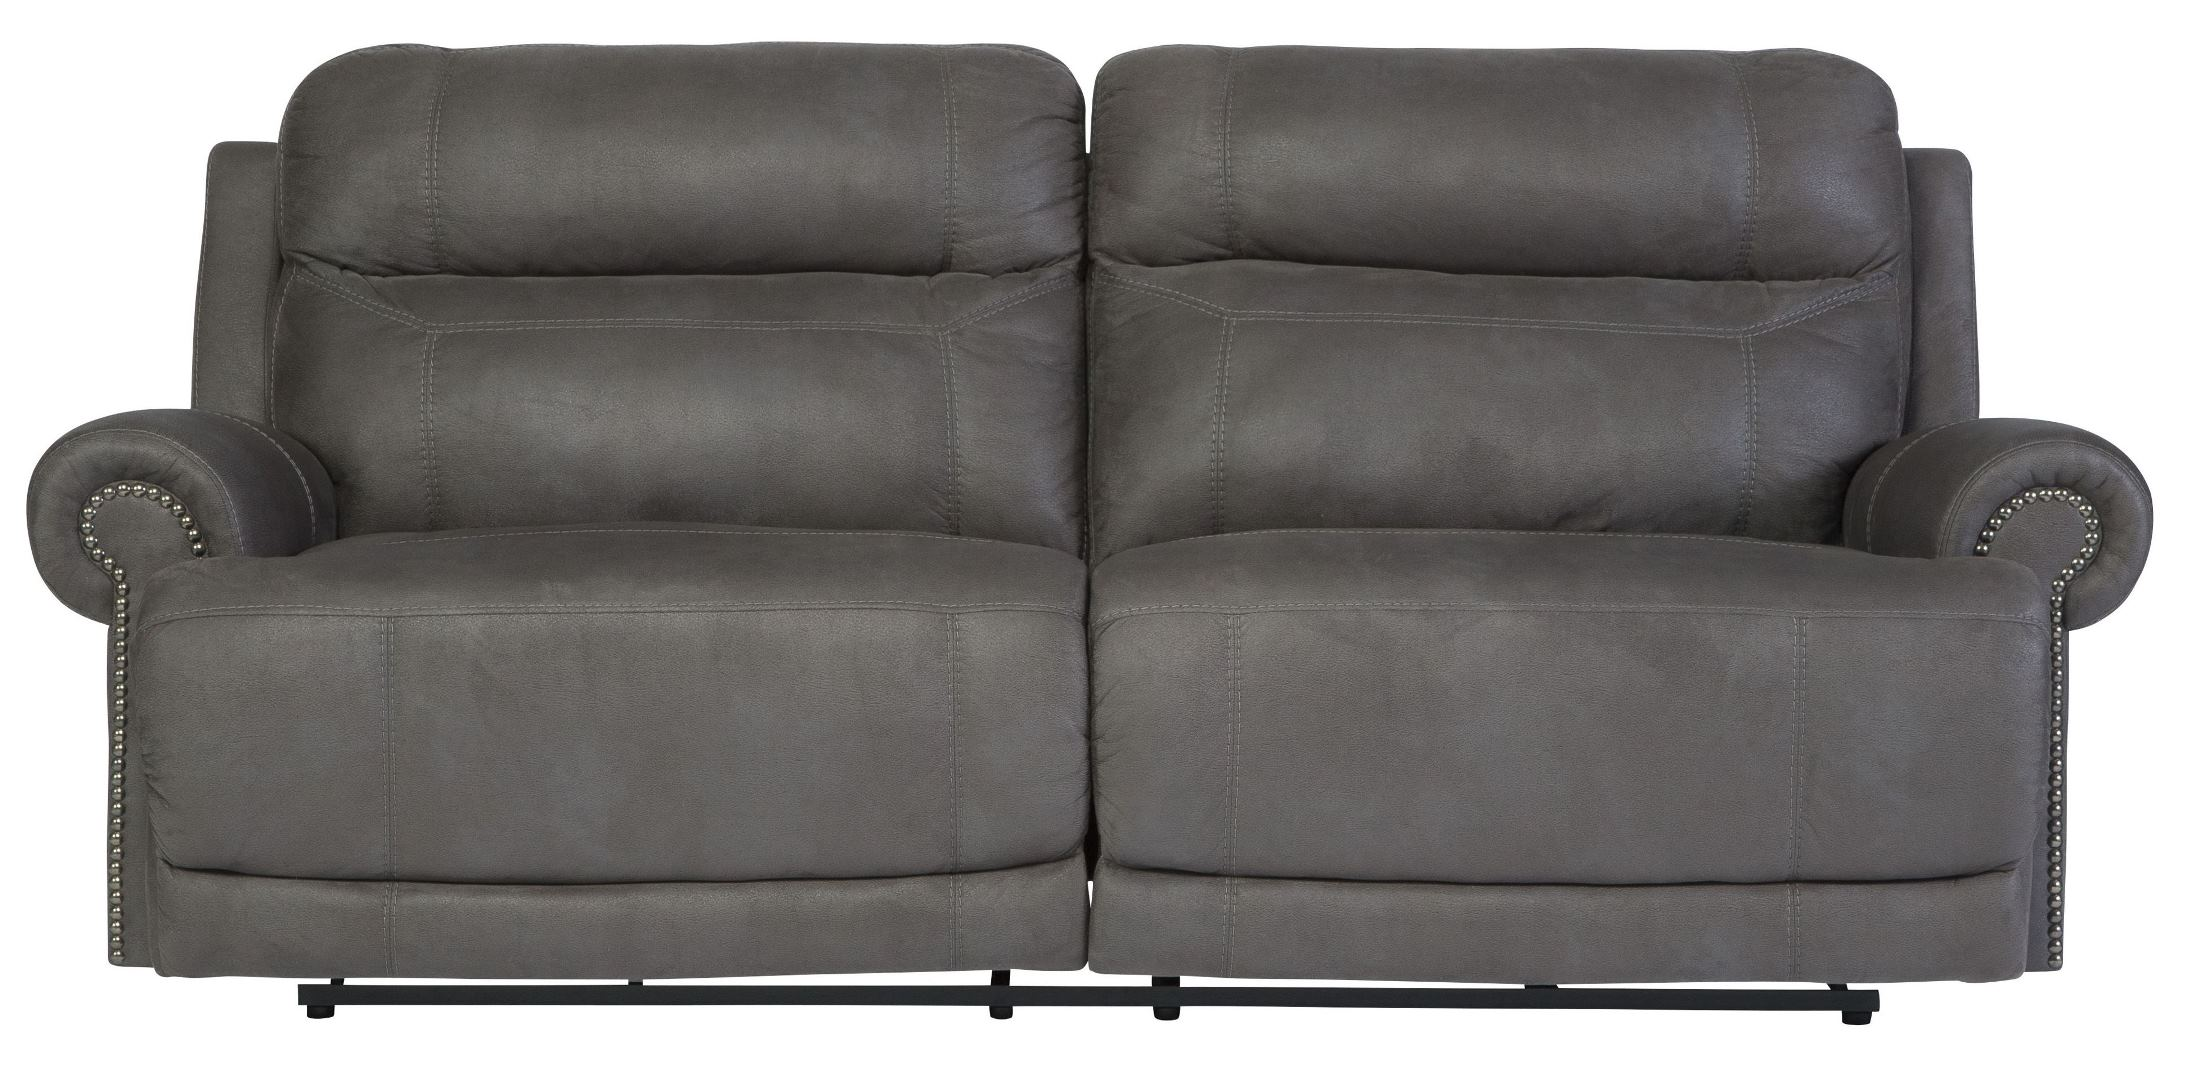 ashley reclining sofa disembly old sofas for sale how to take apart an electric recliner review home co